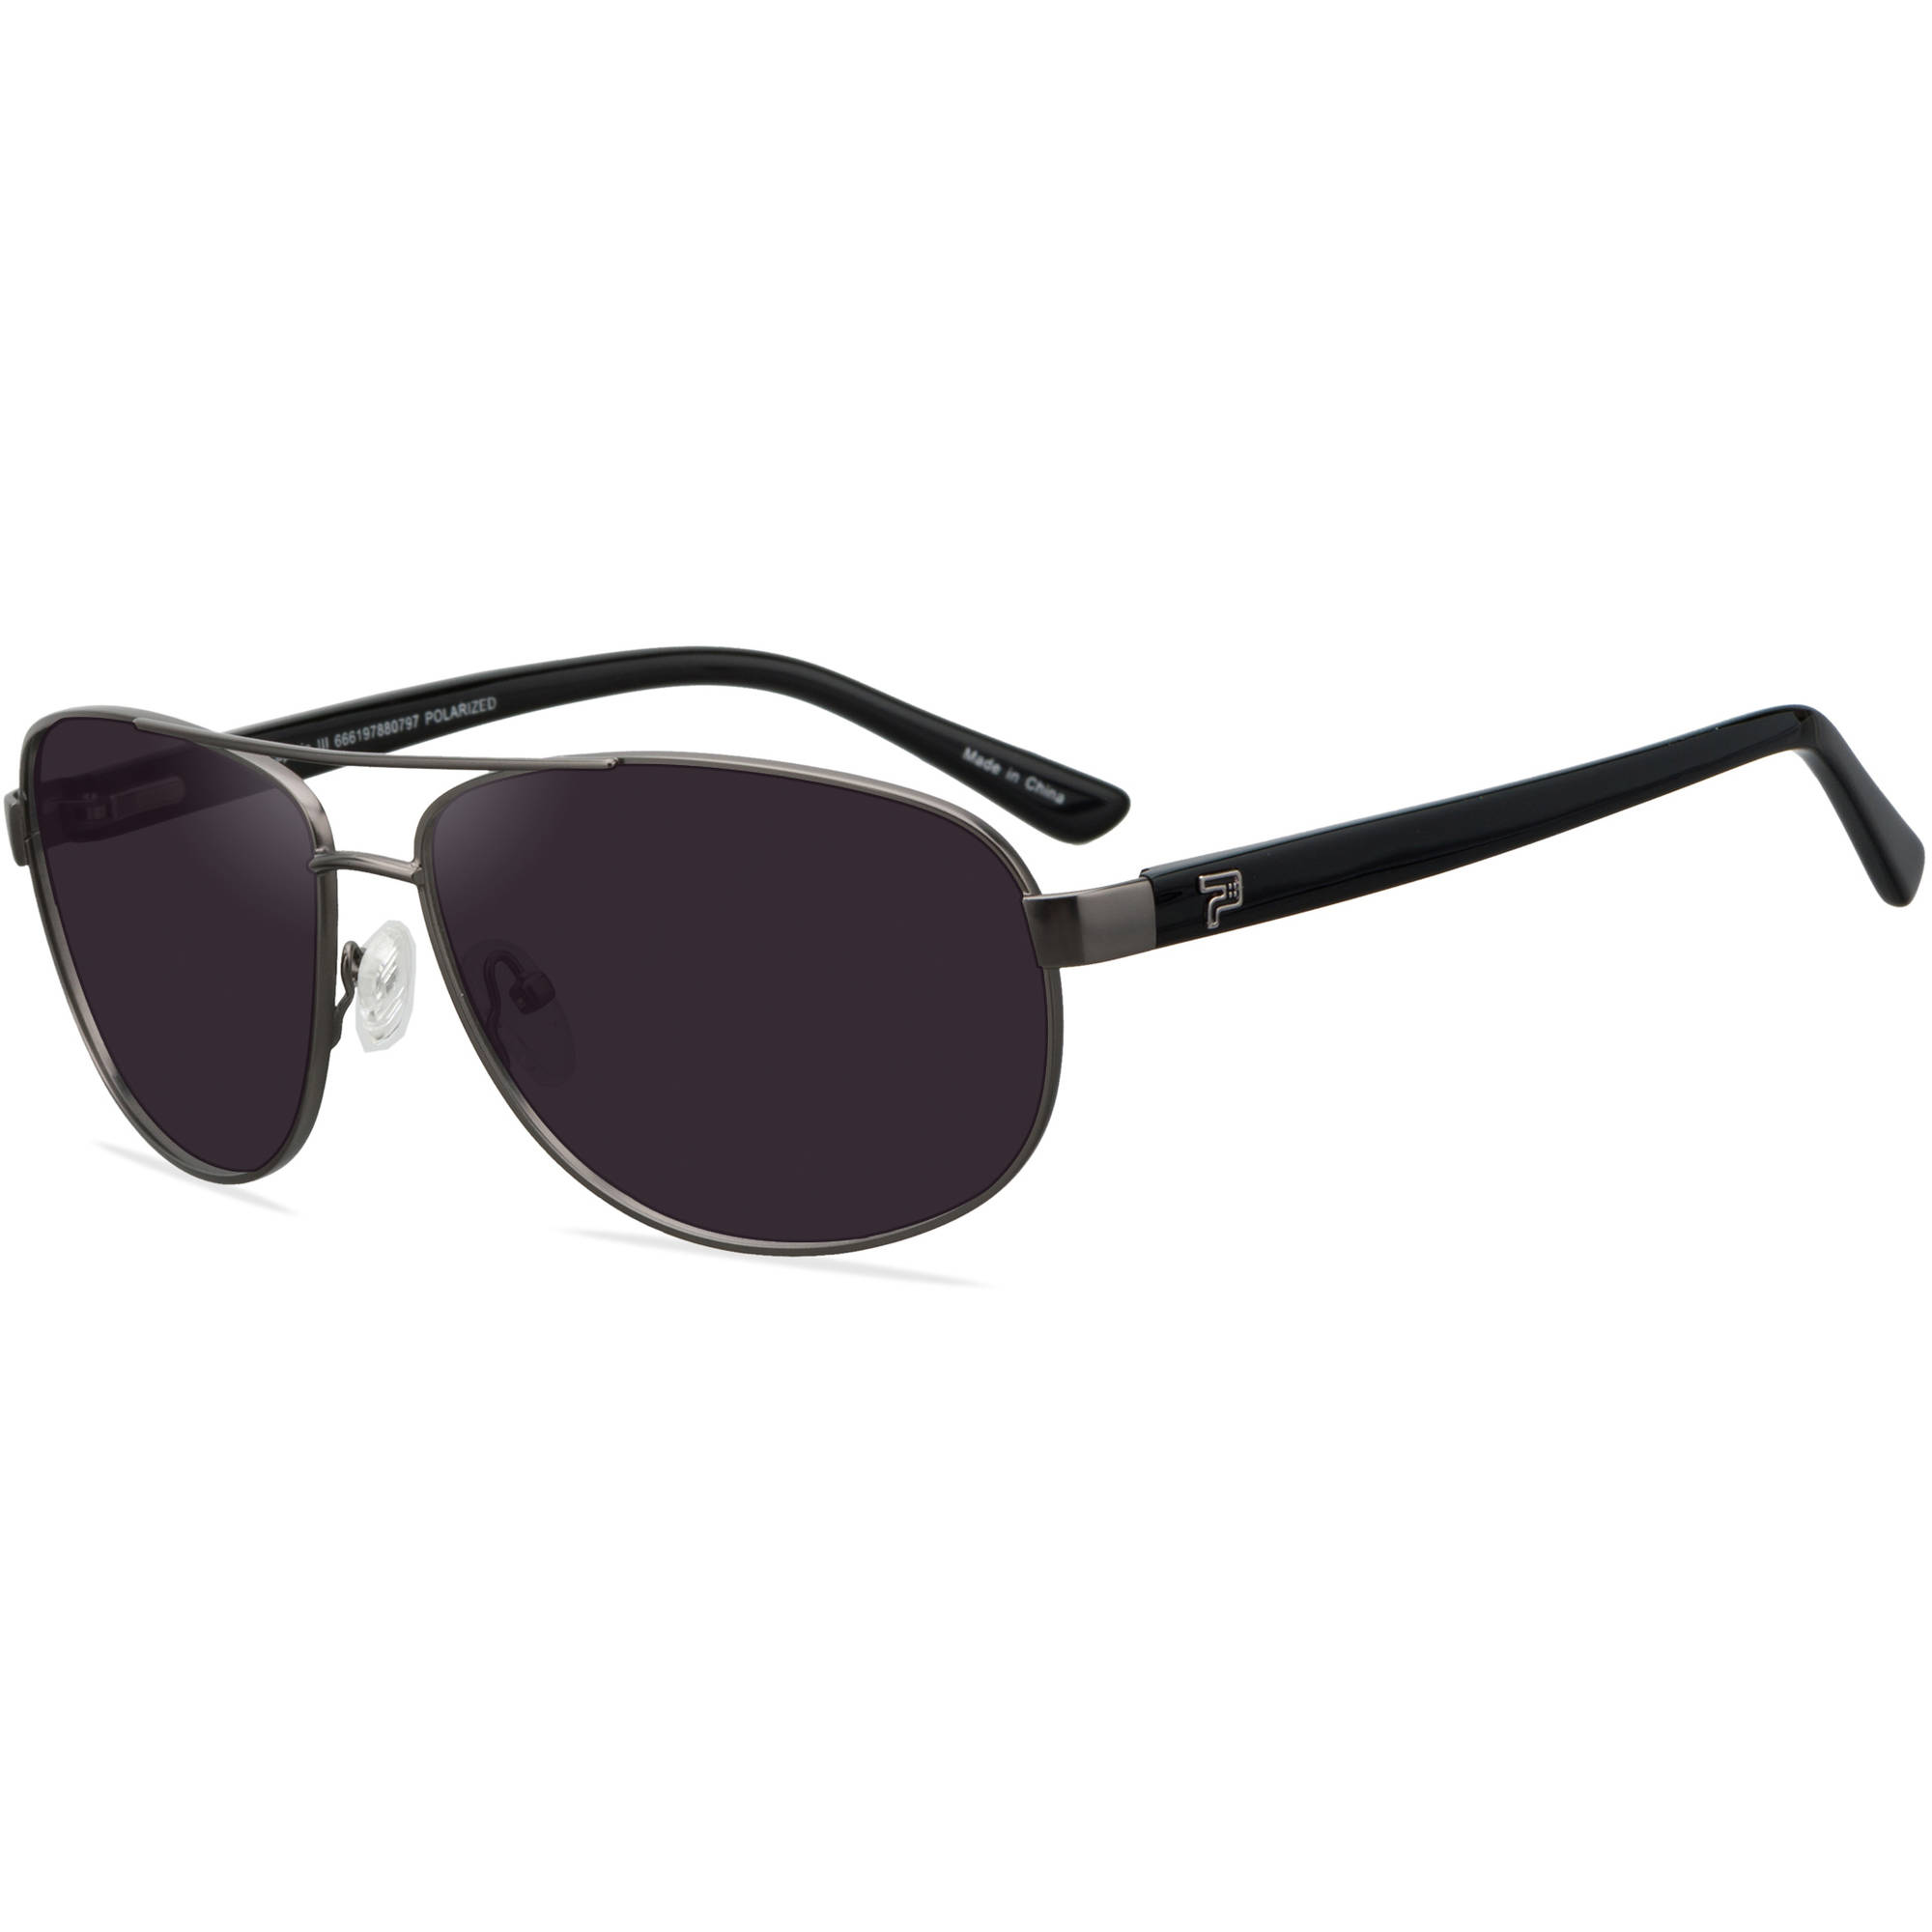 PRX Mens Prescription Sunglasses, Captain III Mat. Gun/Blk - Walmart.com at Walmart - Vision Center in Connersville, IN | Tuggl